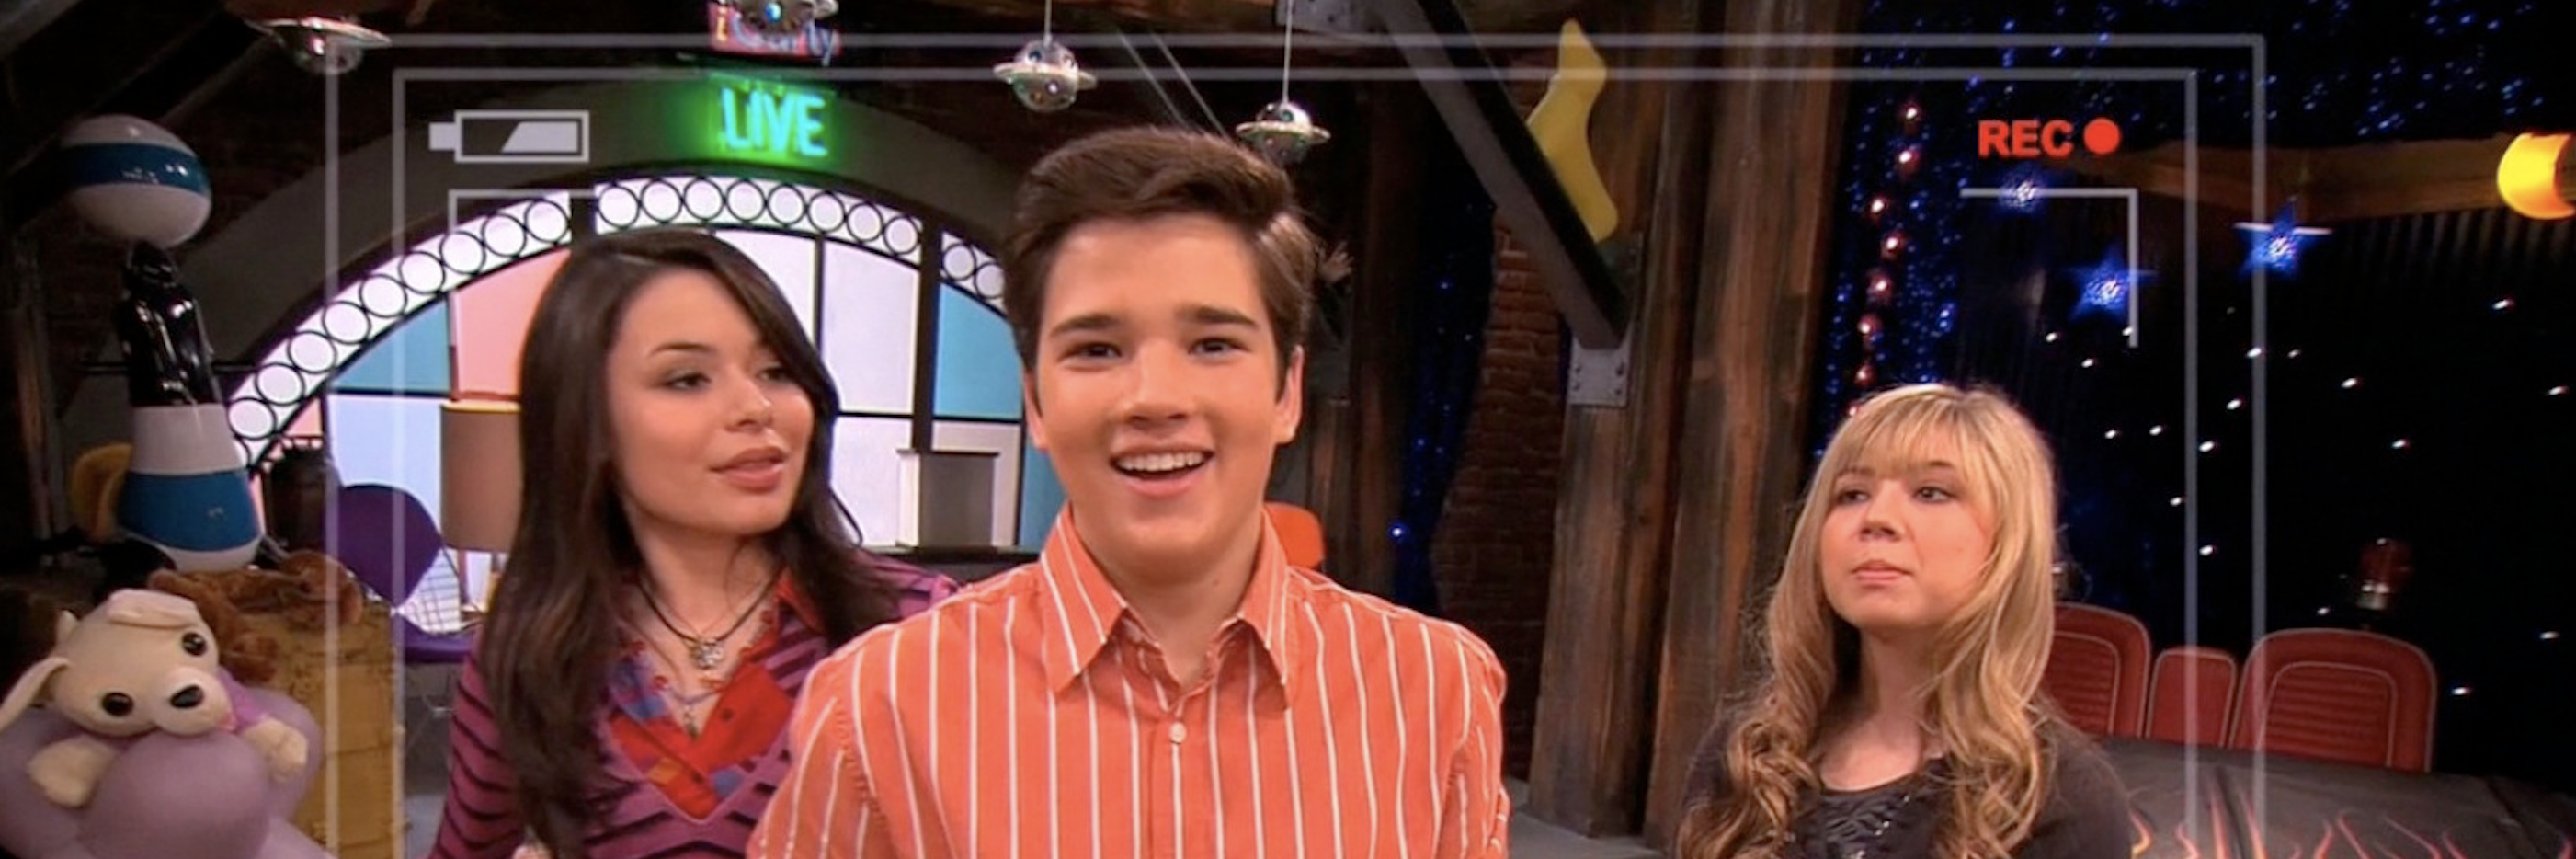 Who is freddie from icarly hookup in real life